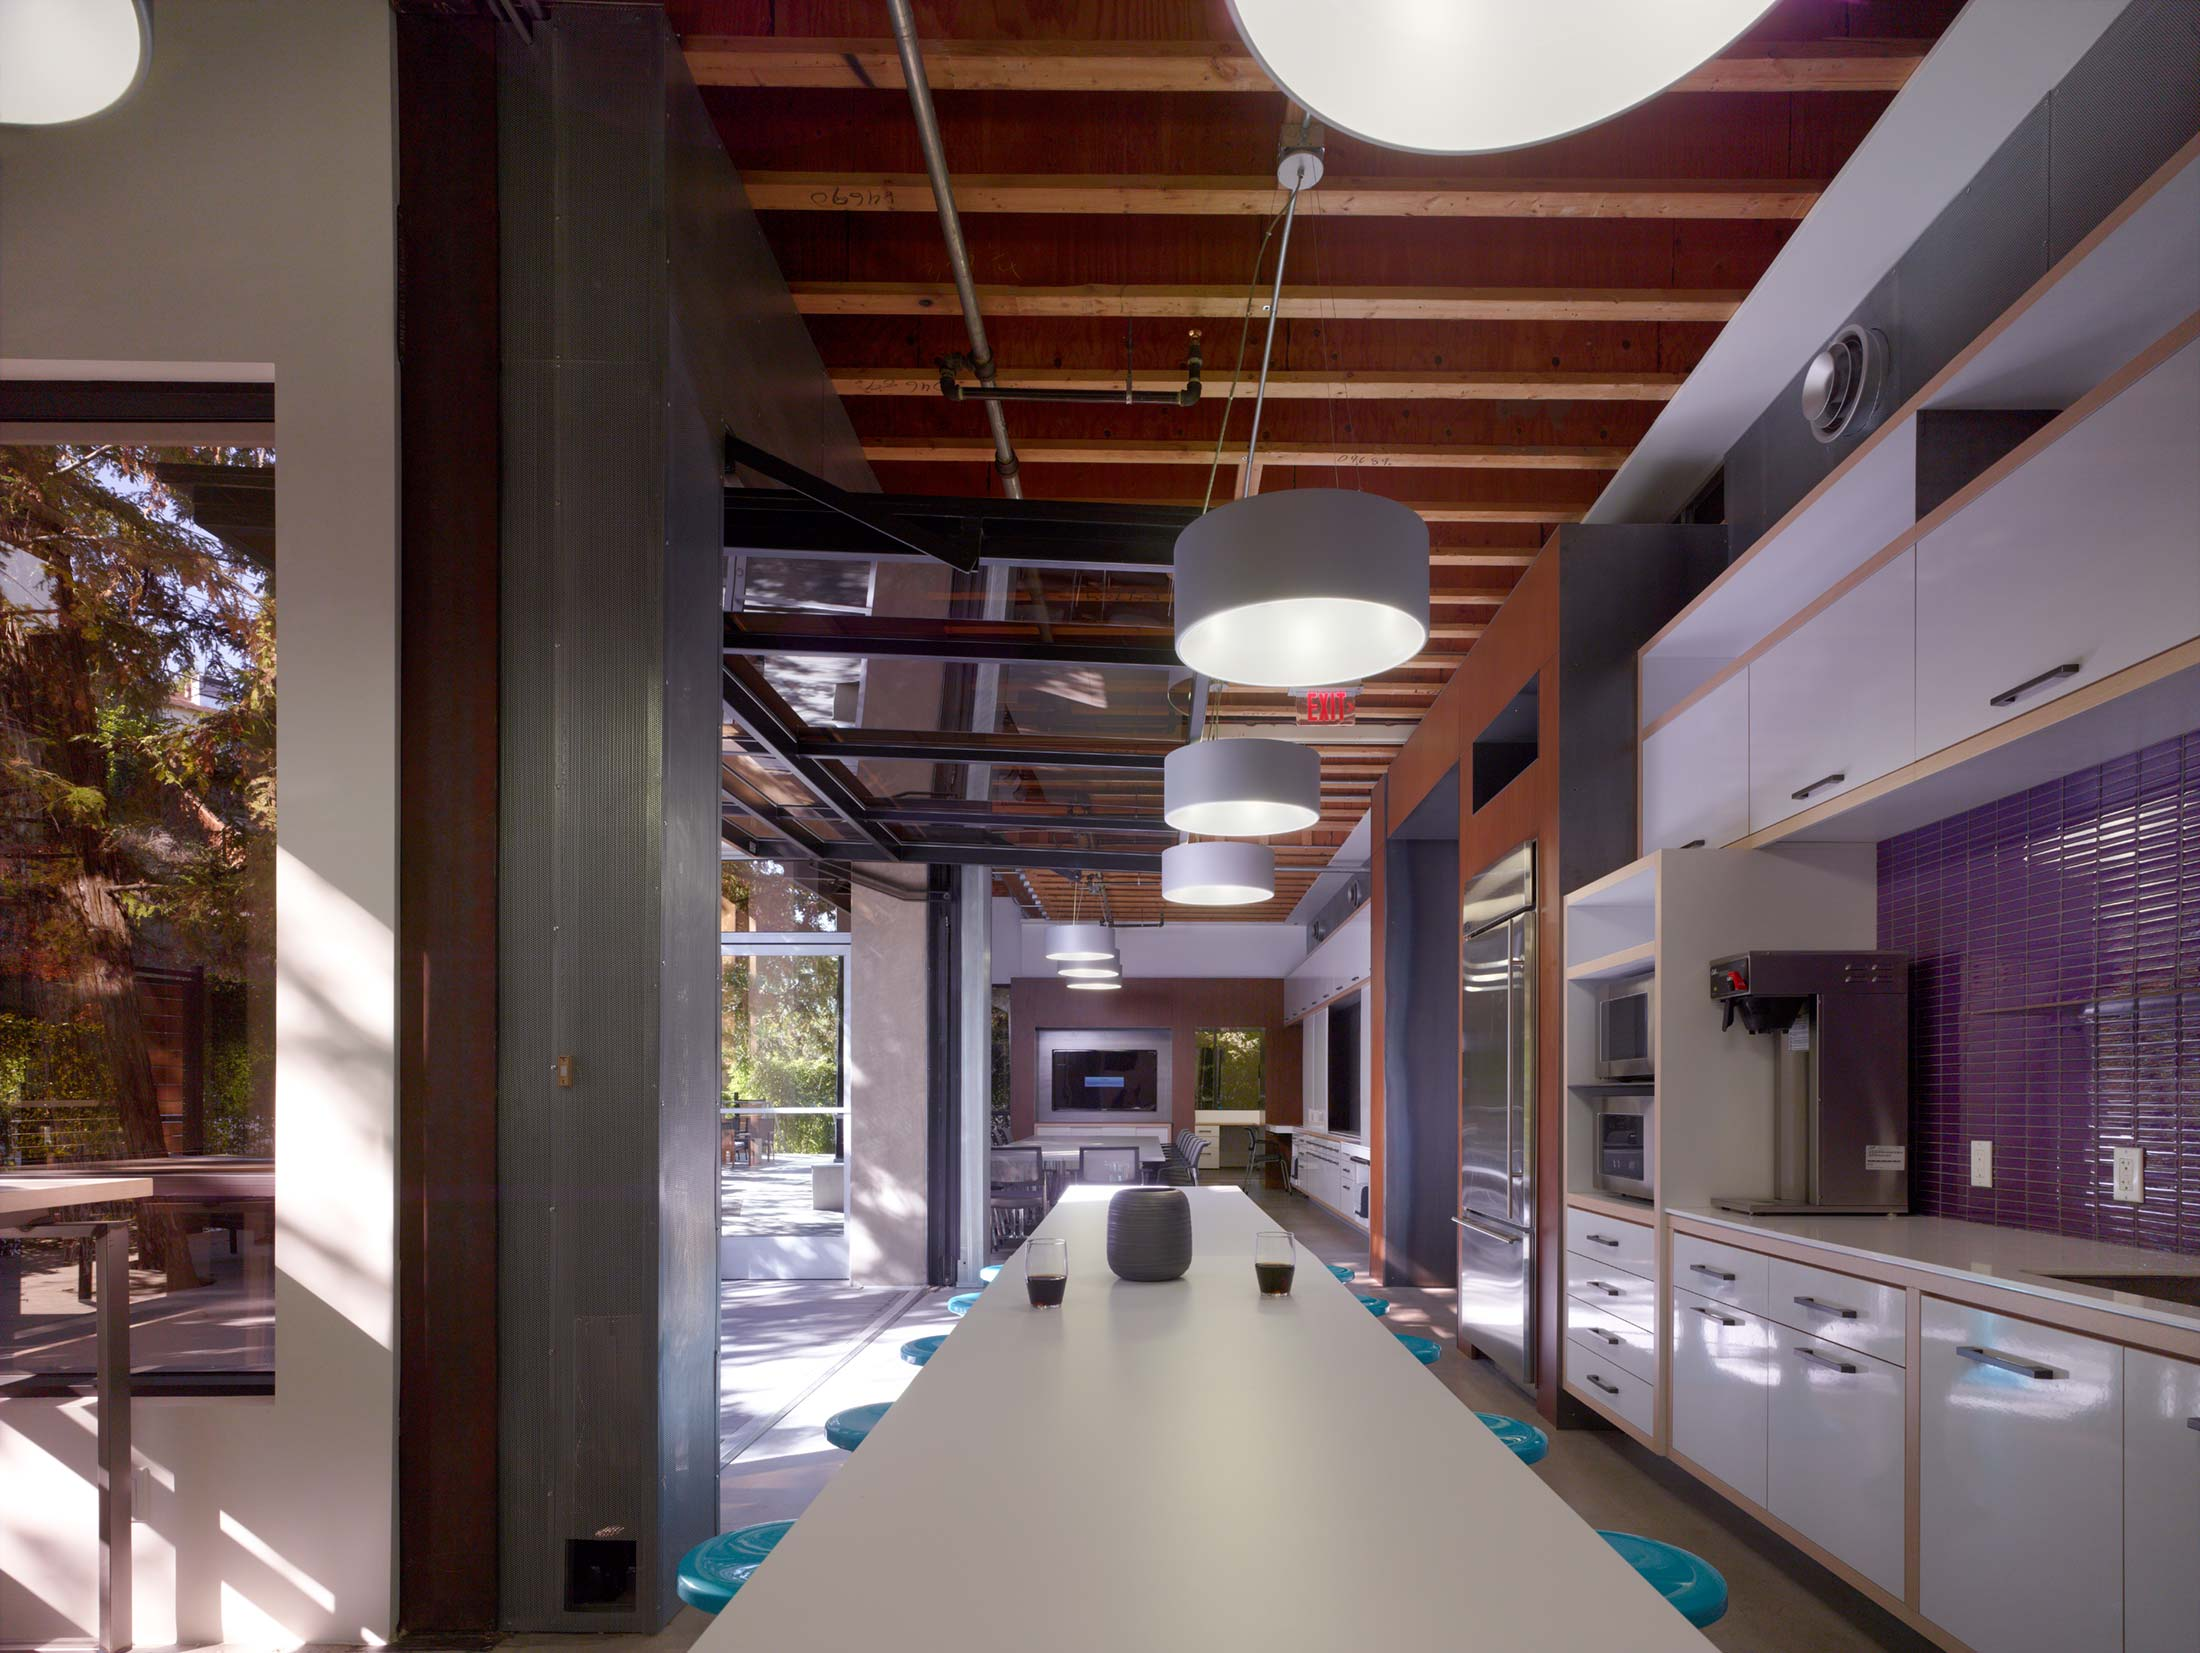 modern-architecture-commercial-interiors-workplace-office-custom-fabrication-sustainable-california-shubindonaldson-sierra-pacific-construction-10